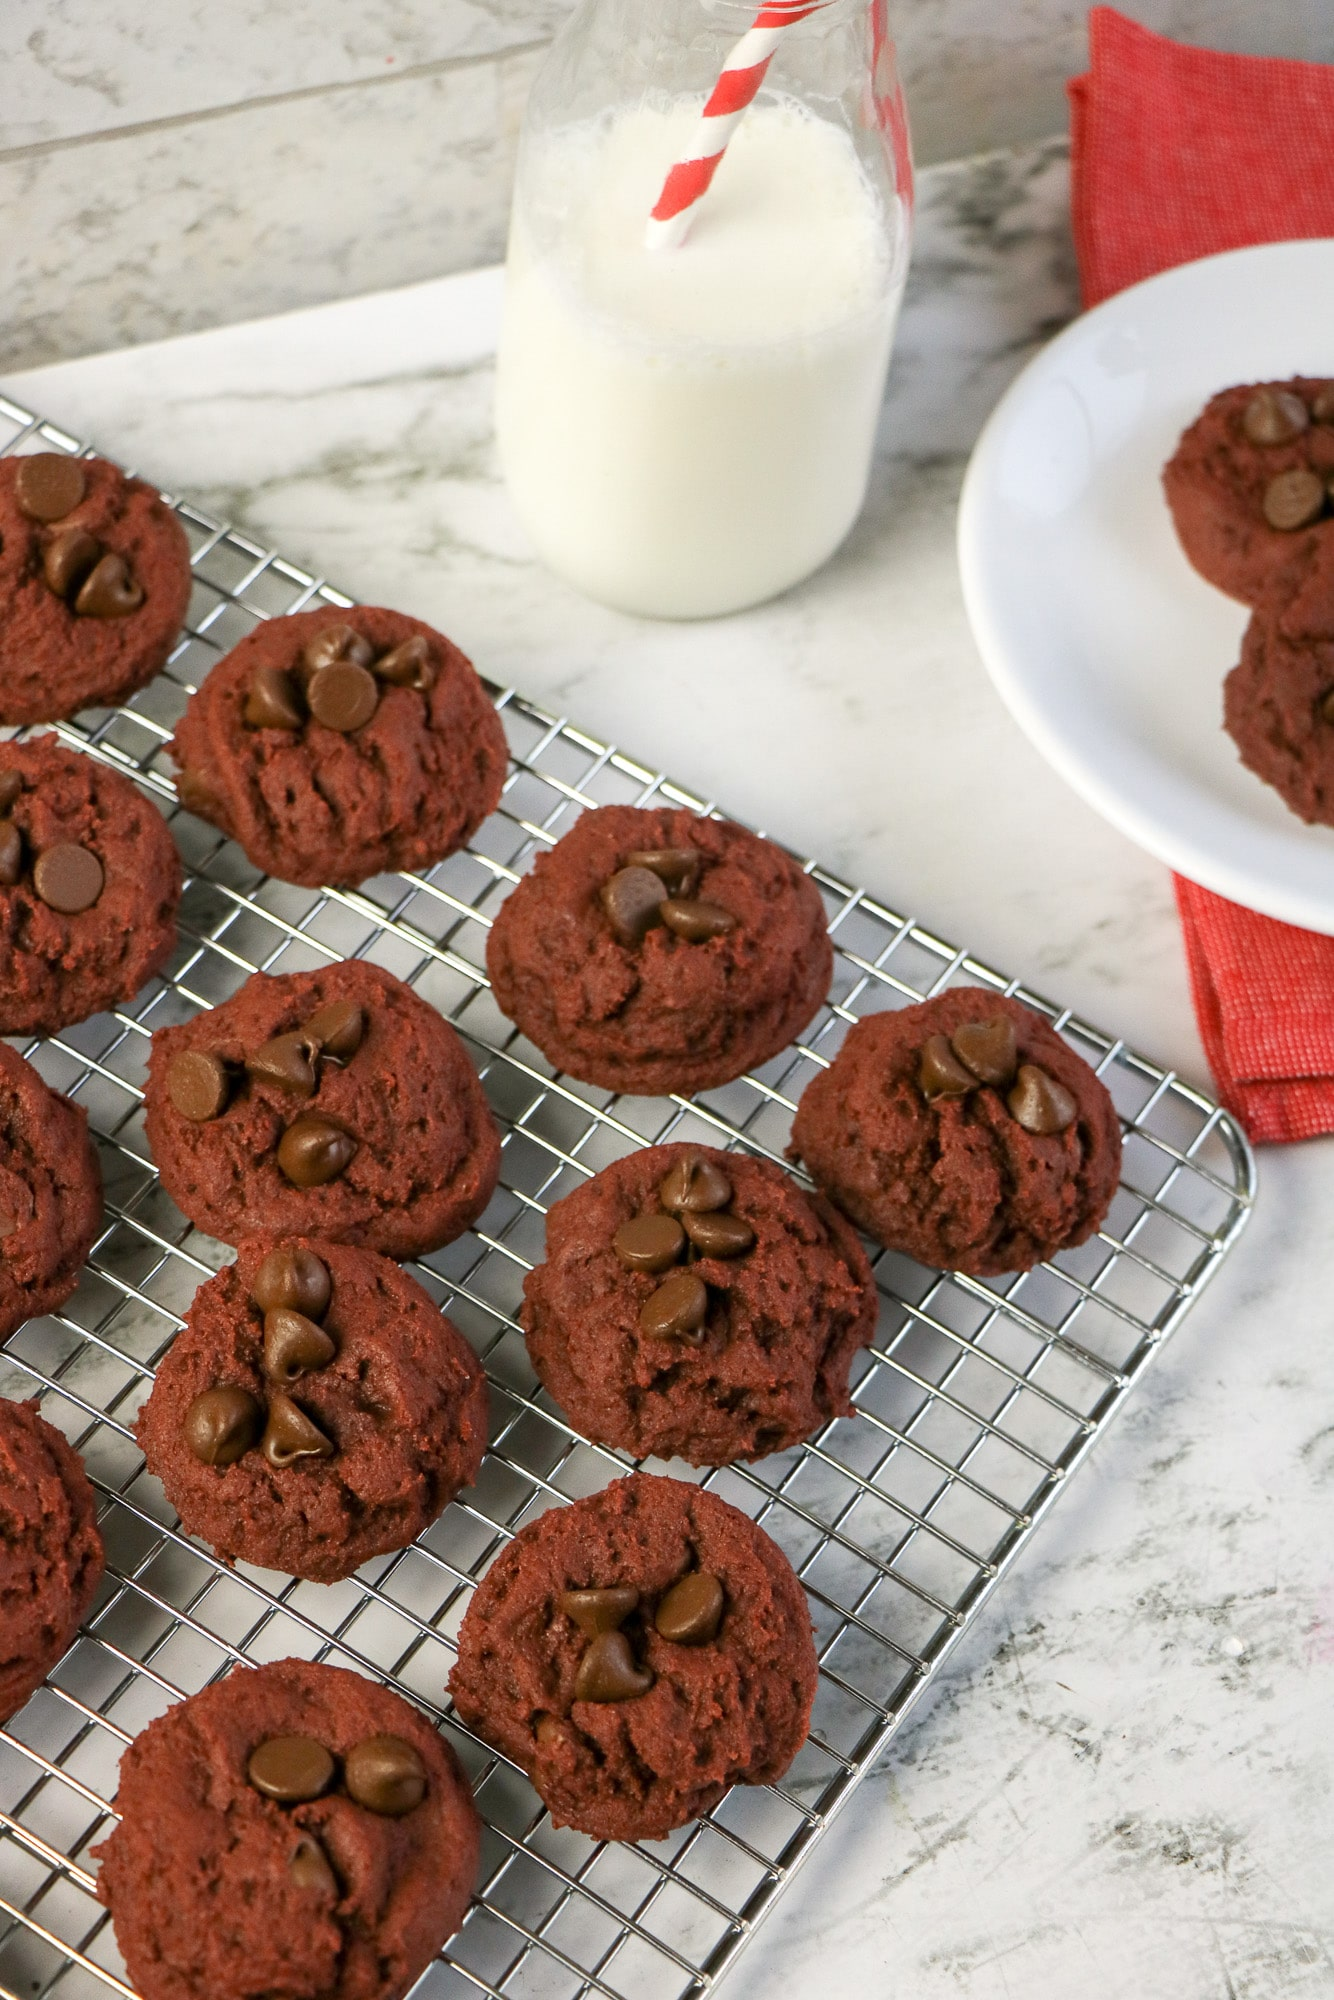 red chocolate chip cookies on cooking rack